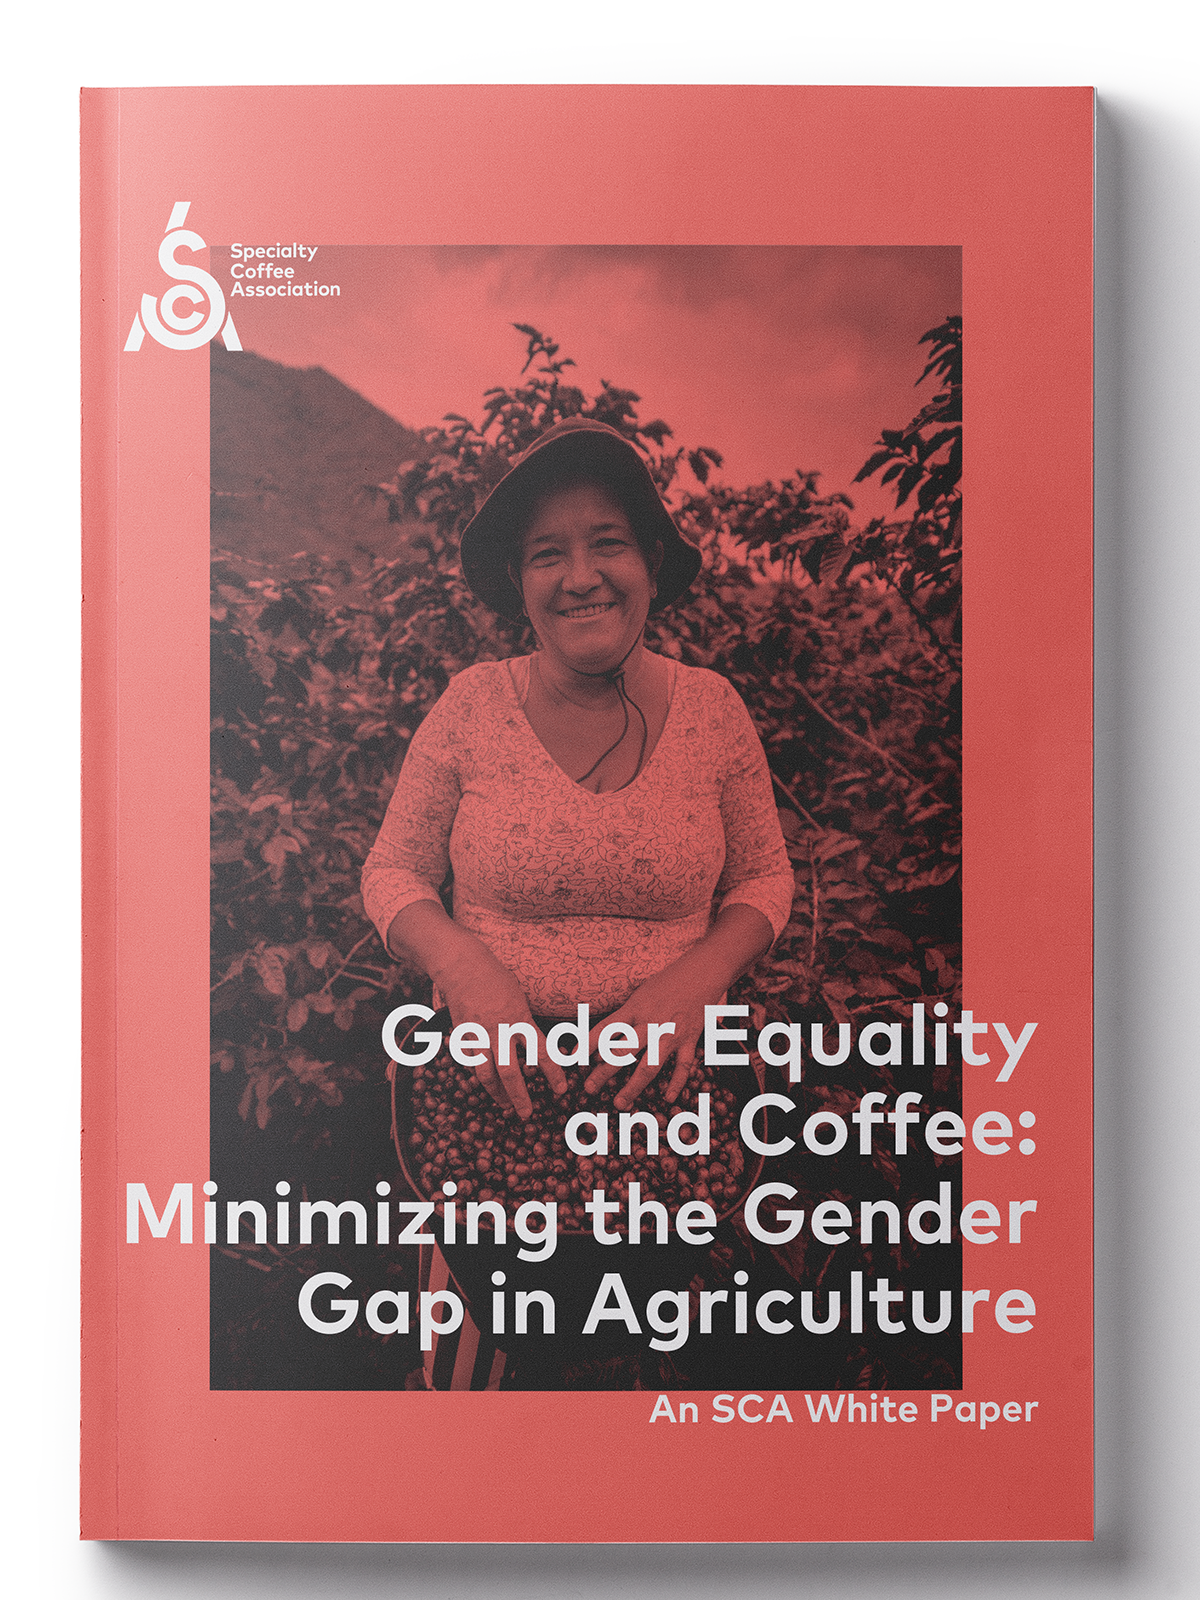 Gender Equality and Coffee: Minimizing the Gender Gap in Agriculture    An SCA White Paper   This resource explores the gender inequality that exists in coffee, creating inefficiencies in the value chain. Developed by the Sustainability Council, this paper asserts that the specialty coffee industry has a tremendous opportunity to minimize the gender gap in agriculture to the benefit of our specialty coffee supply and our suppliers. Learn from organizations who have already started this important work, and what you can do to work towards solutions.   Download